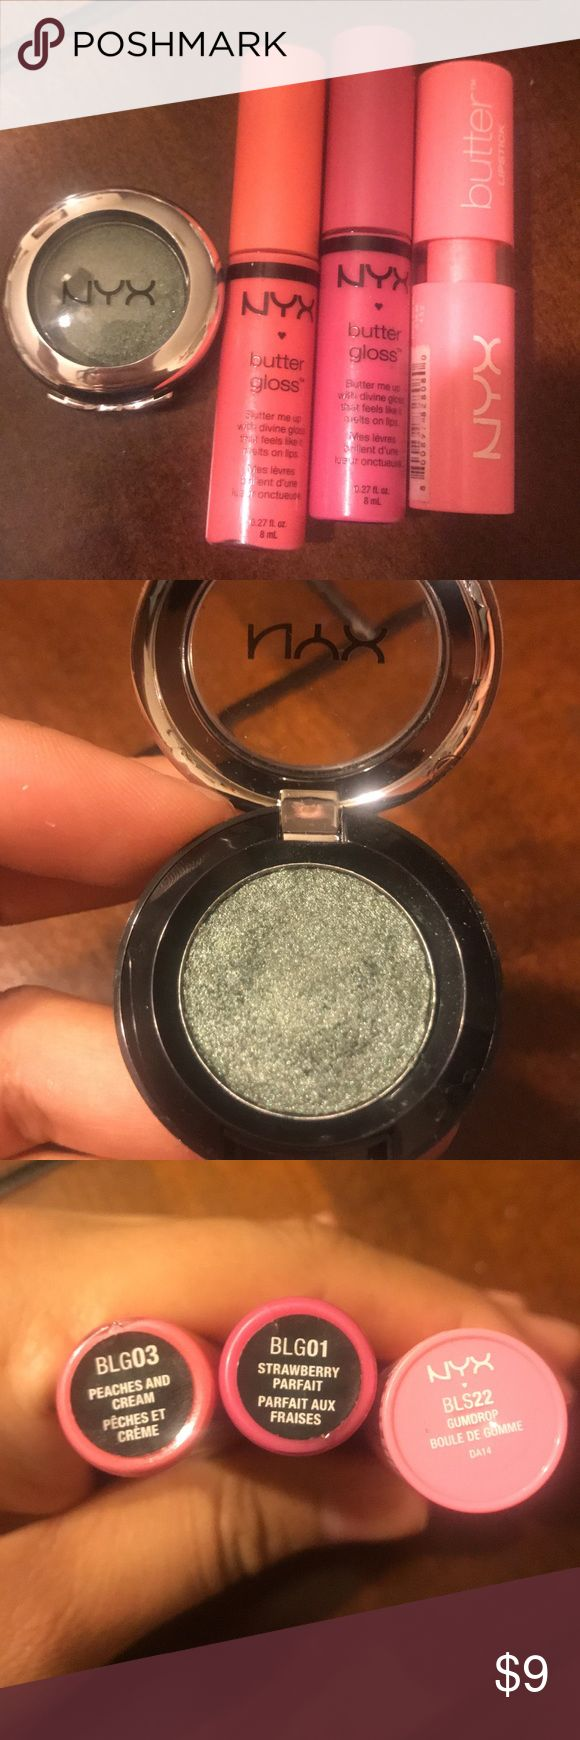 Nyx Lip & eyeshadow Eyeshadow in Jaded de Jade (only swatched), Butter gloss in Strawberry parfait & Peaches & Cream. Butter lipstick in Gumdrop NYX Makeup Eyeshadow